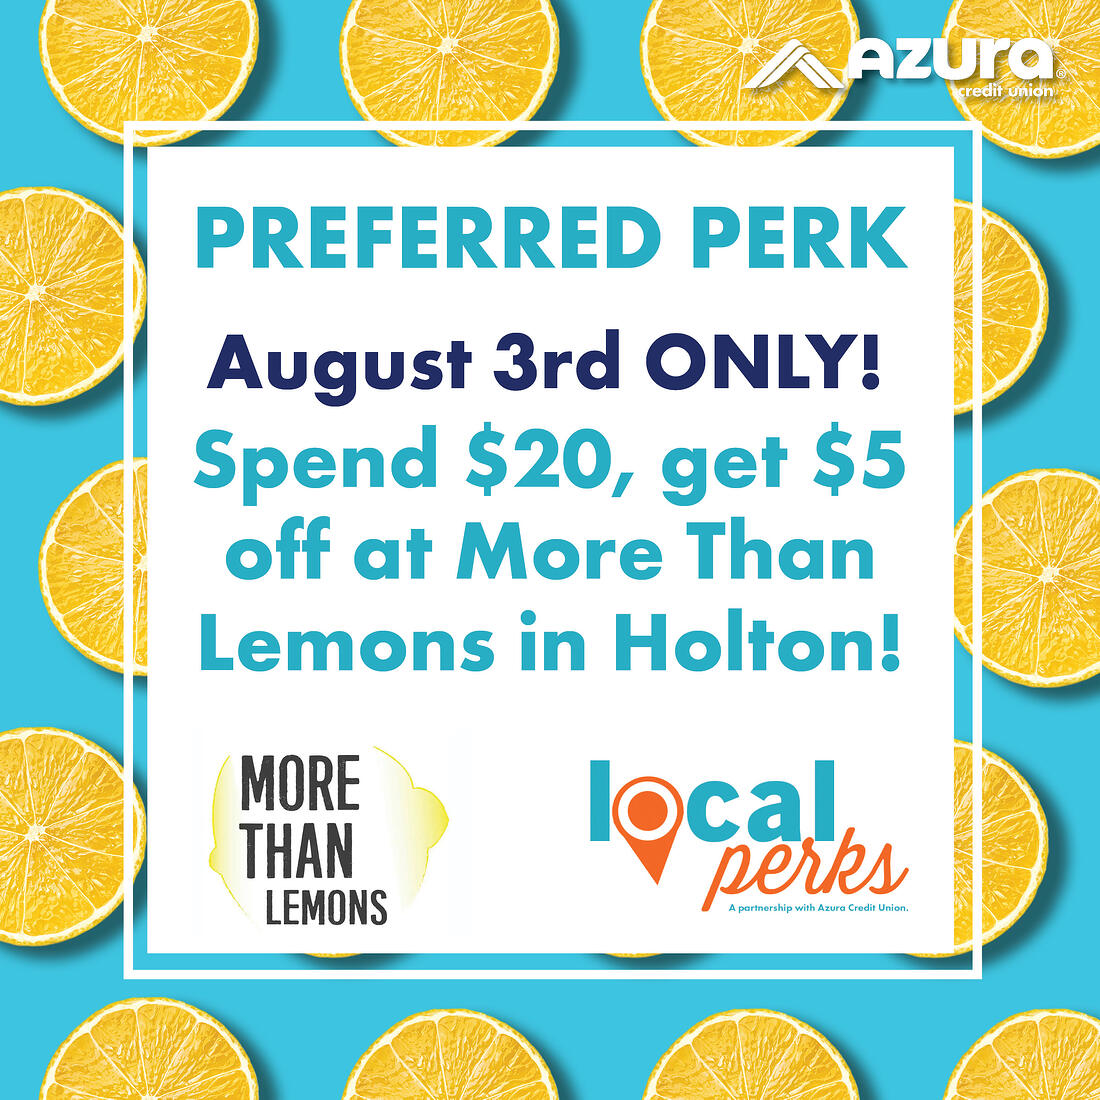 More Than Lemons_PERK 071912